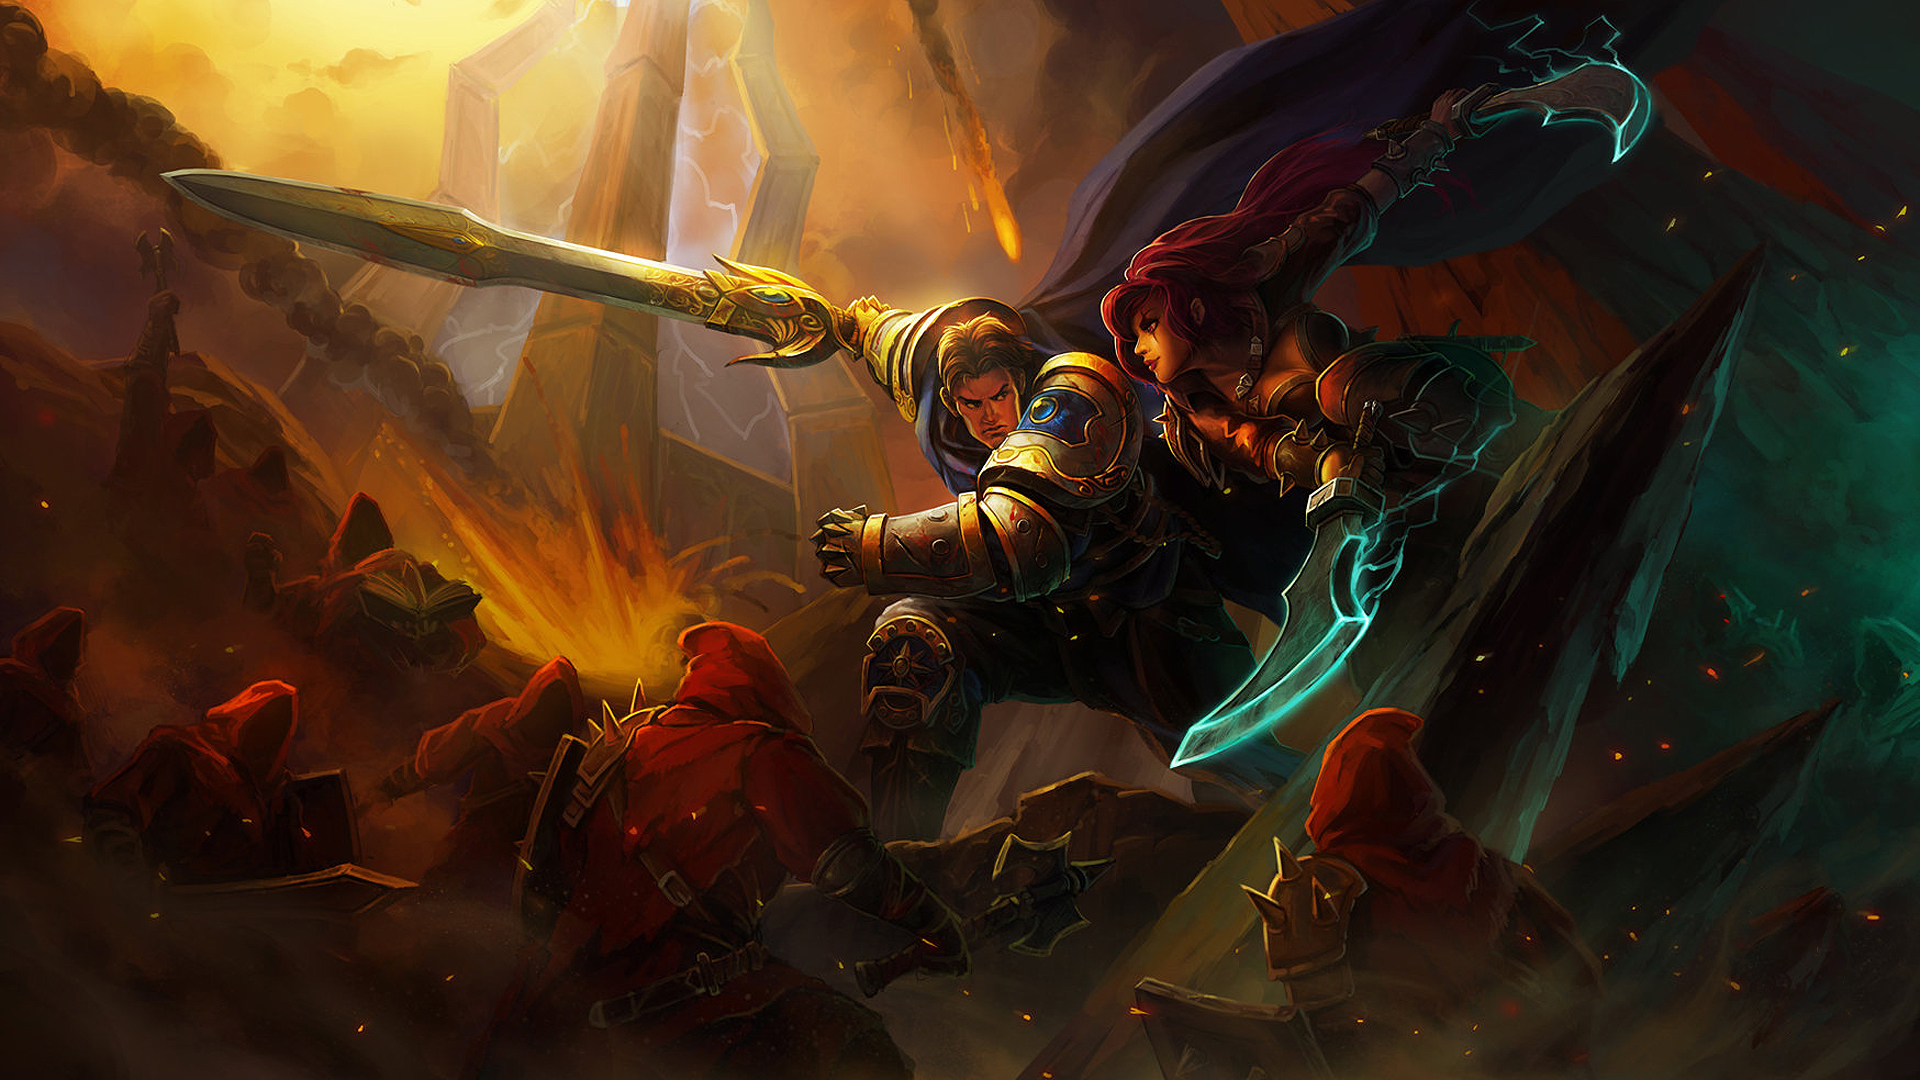 Garen vs Katarina League Of Legends Wallpapers HD 1920x1080